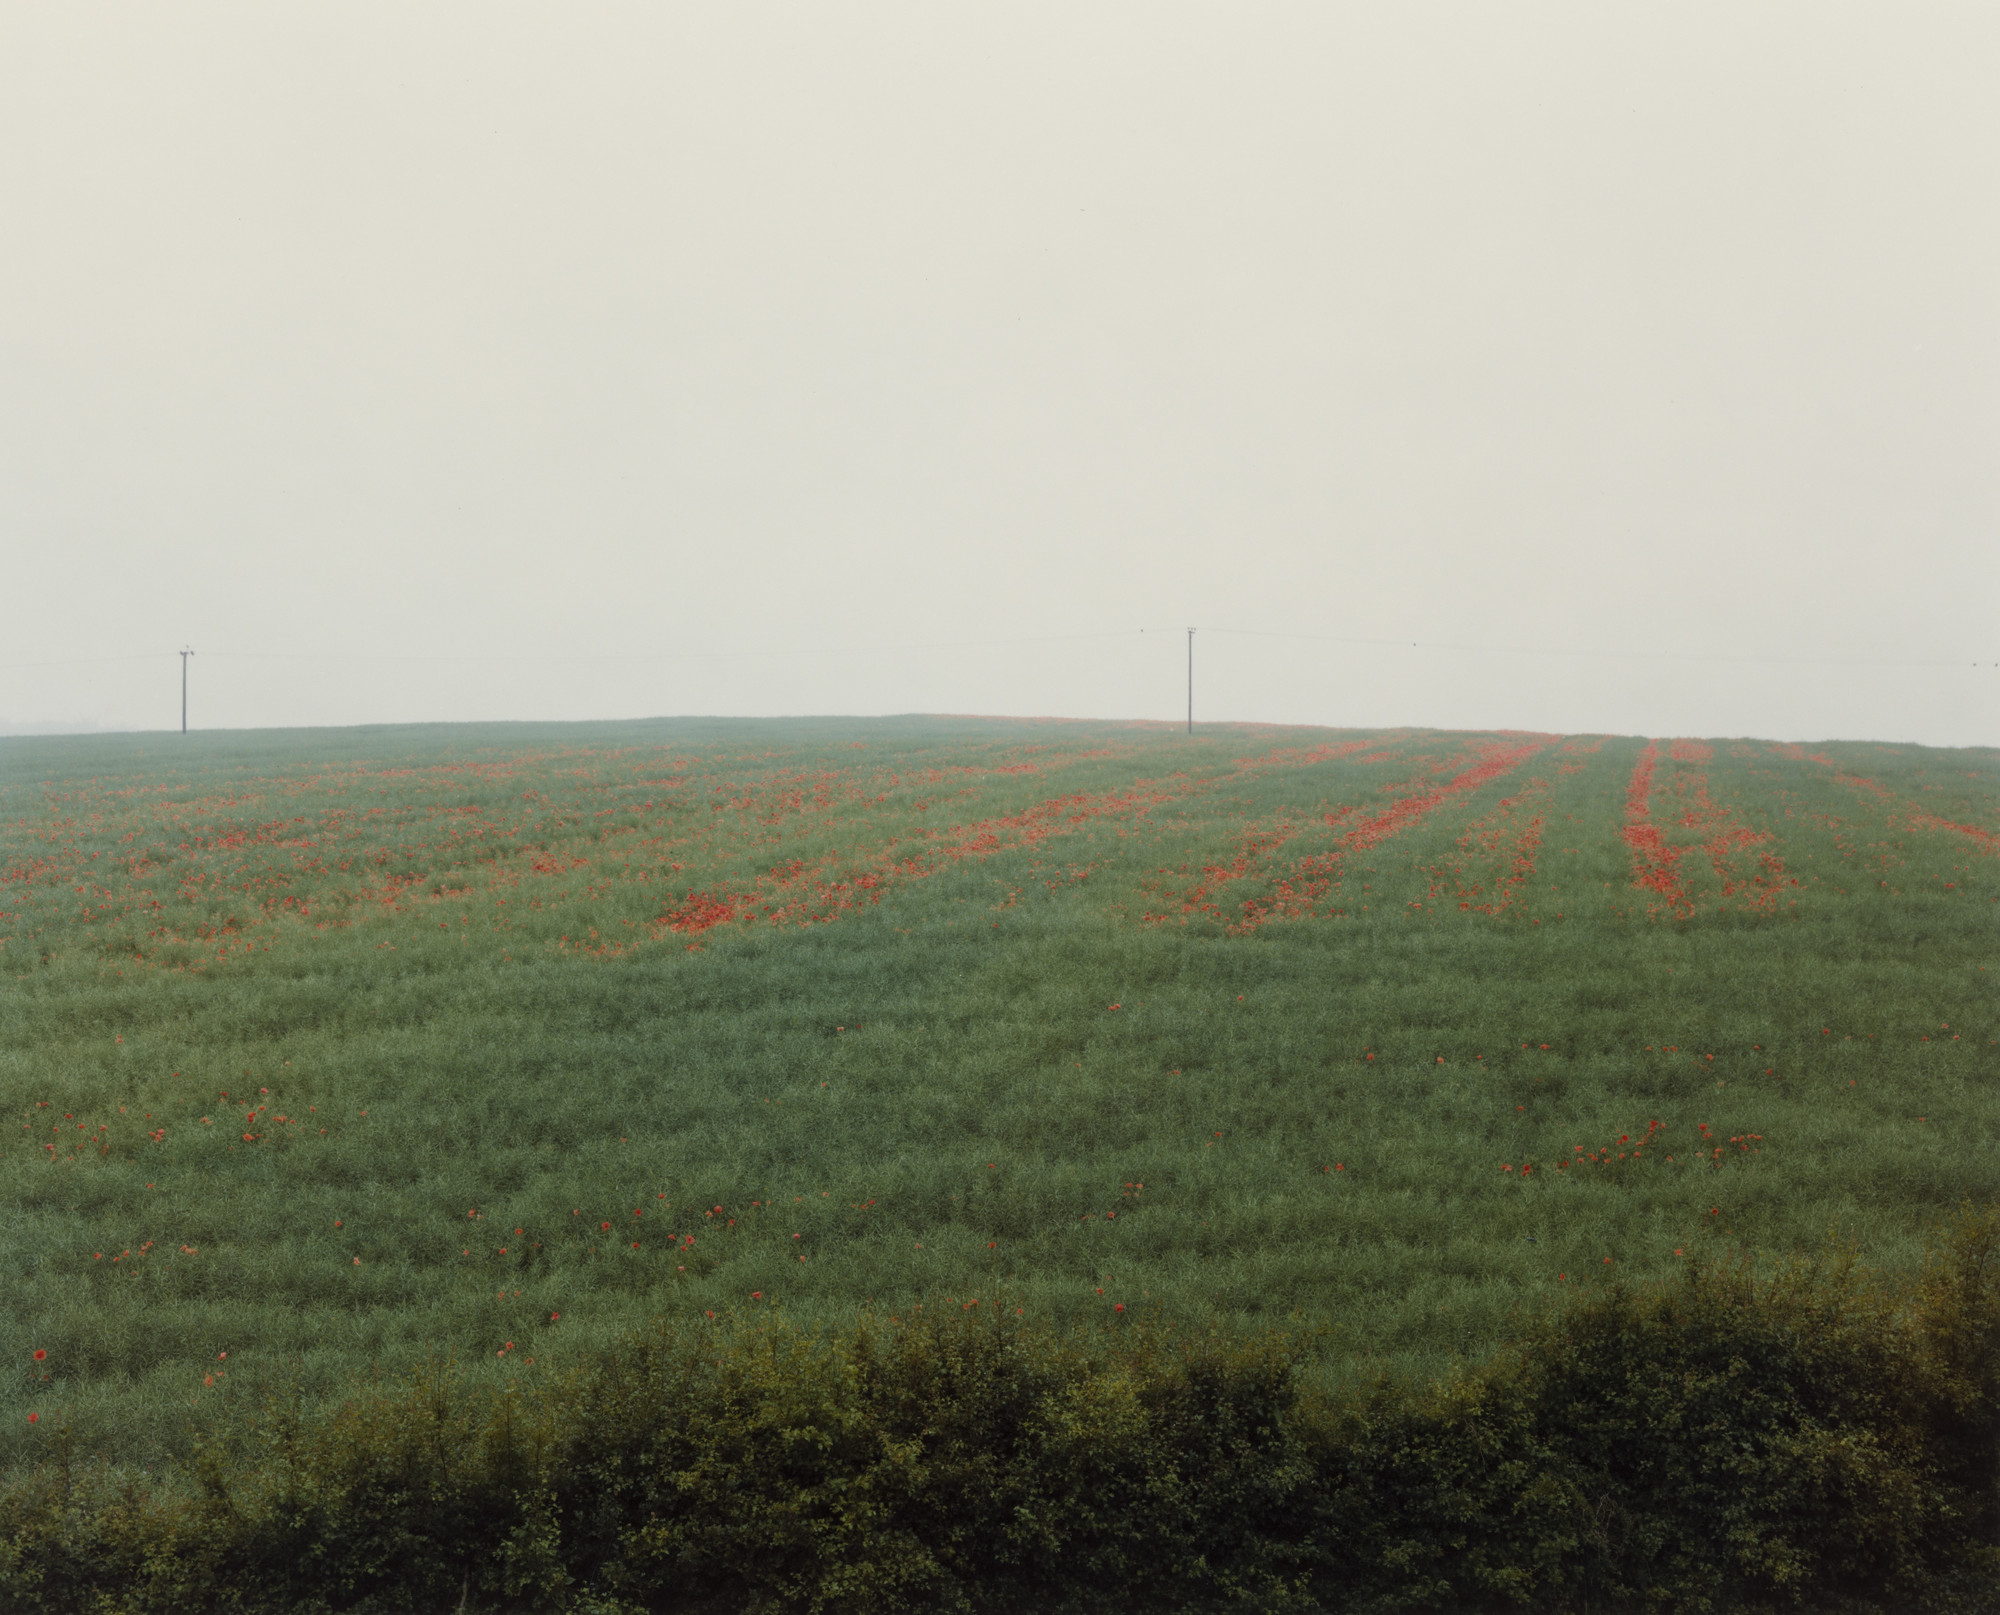 Paul Graham. Poppies in Mist, Bramham, West Yorkshire from the portfolio A1: The Great North Road. May 1982